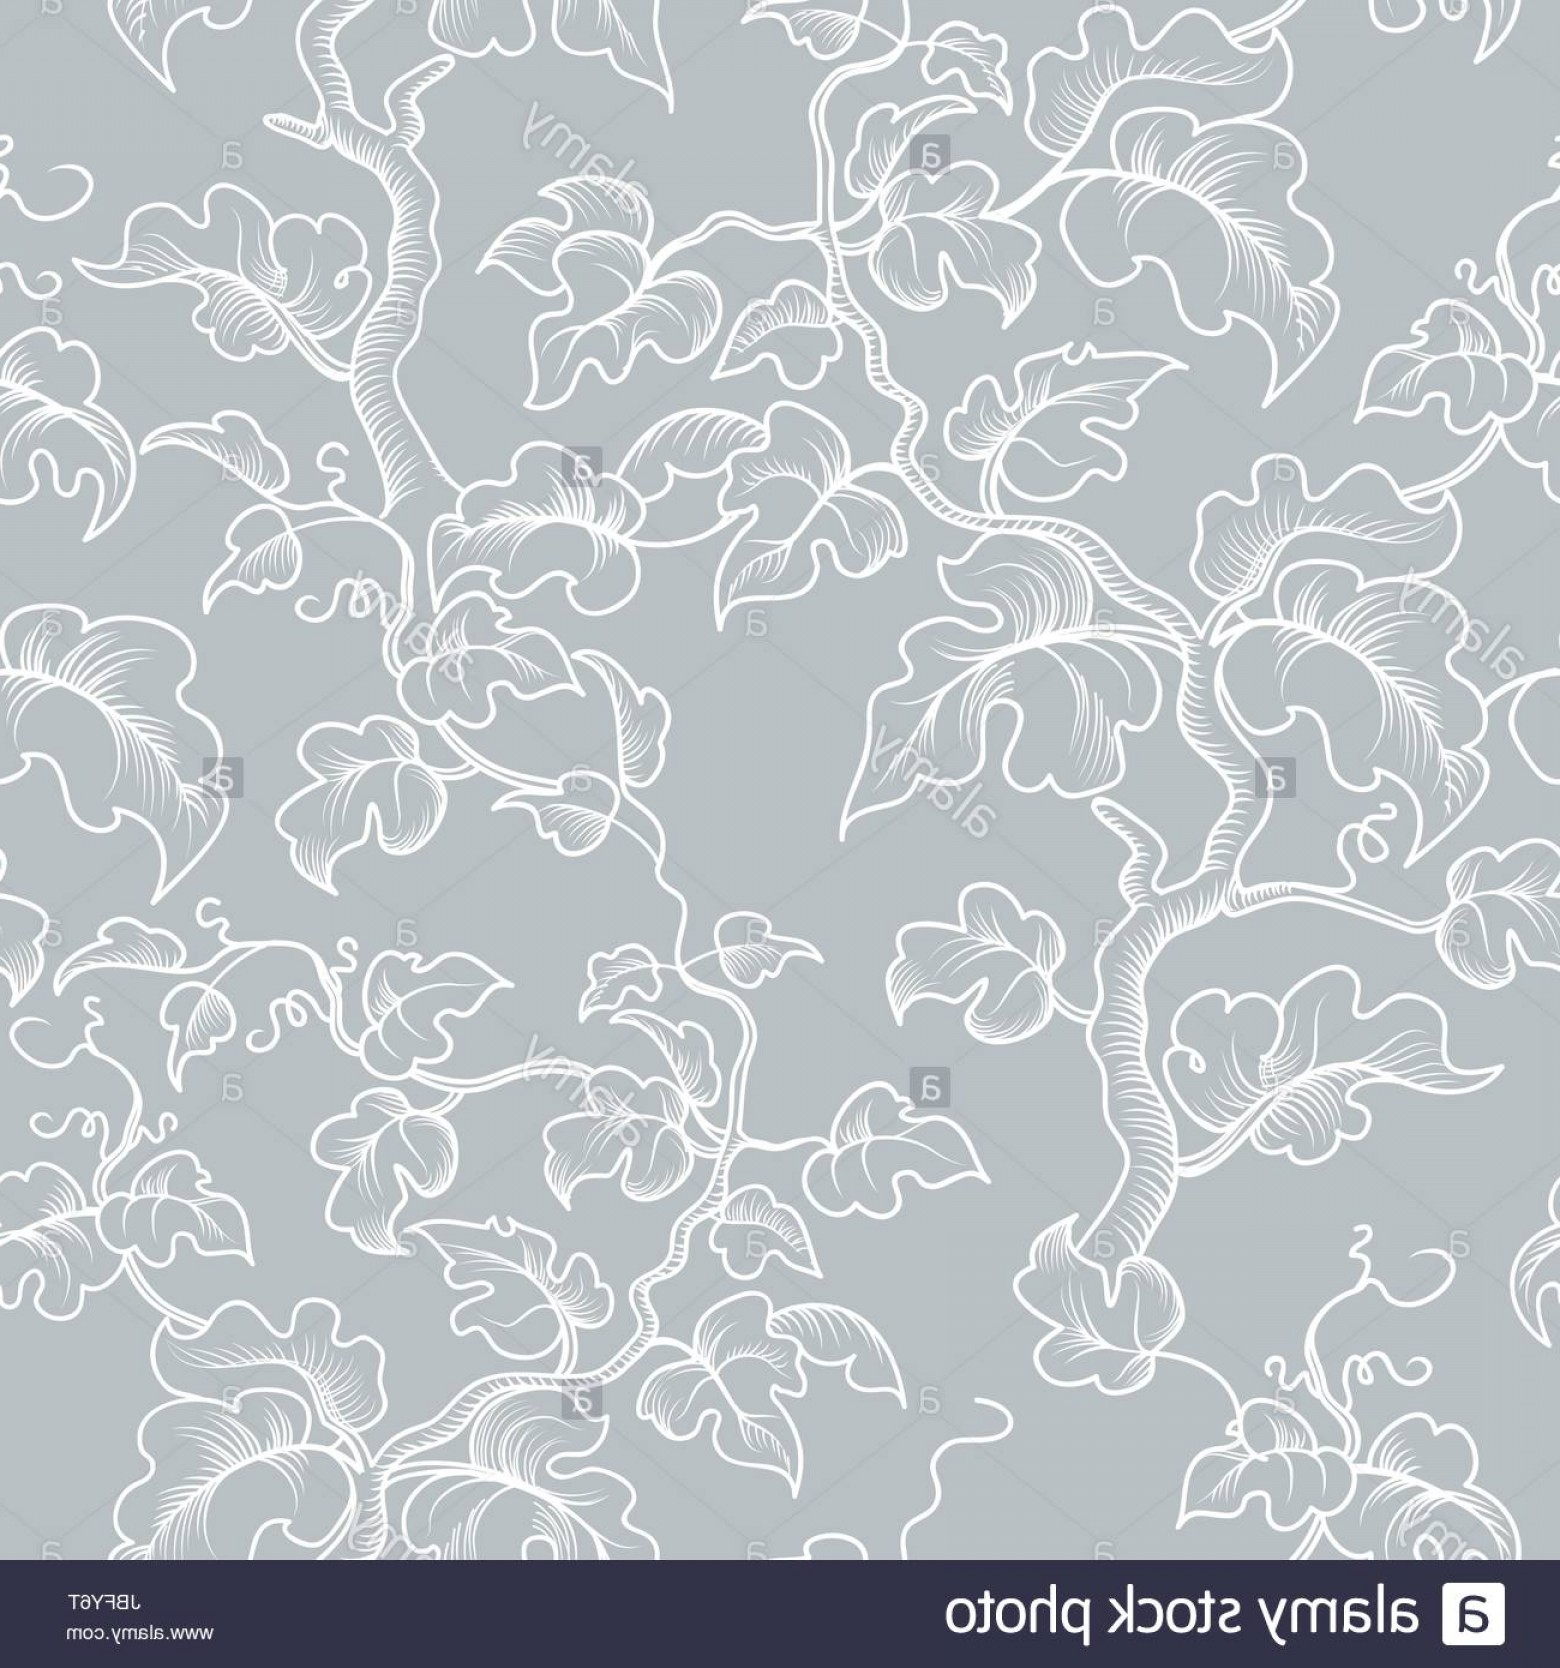 Vector Flourish Backgrounds: Stock Photo Floral Seamless Pattern Decorative Plant Branch Leaves Flourish Engraving